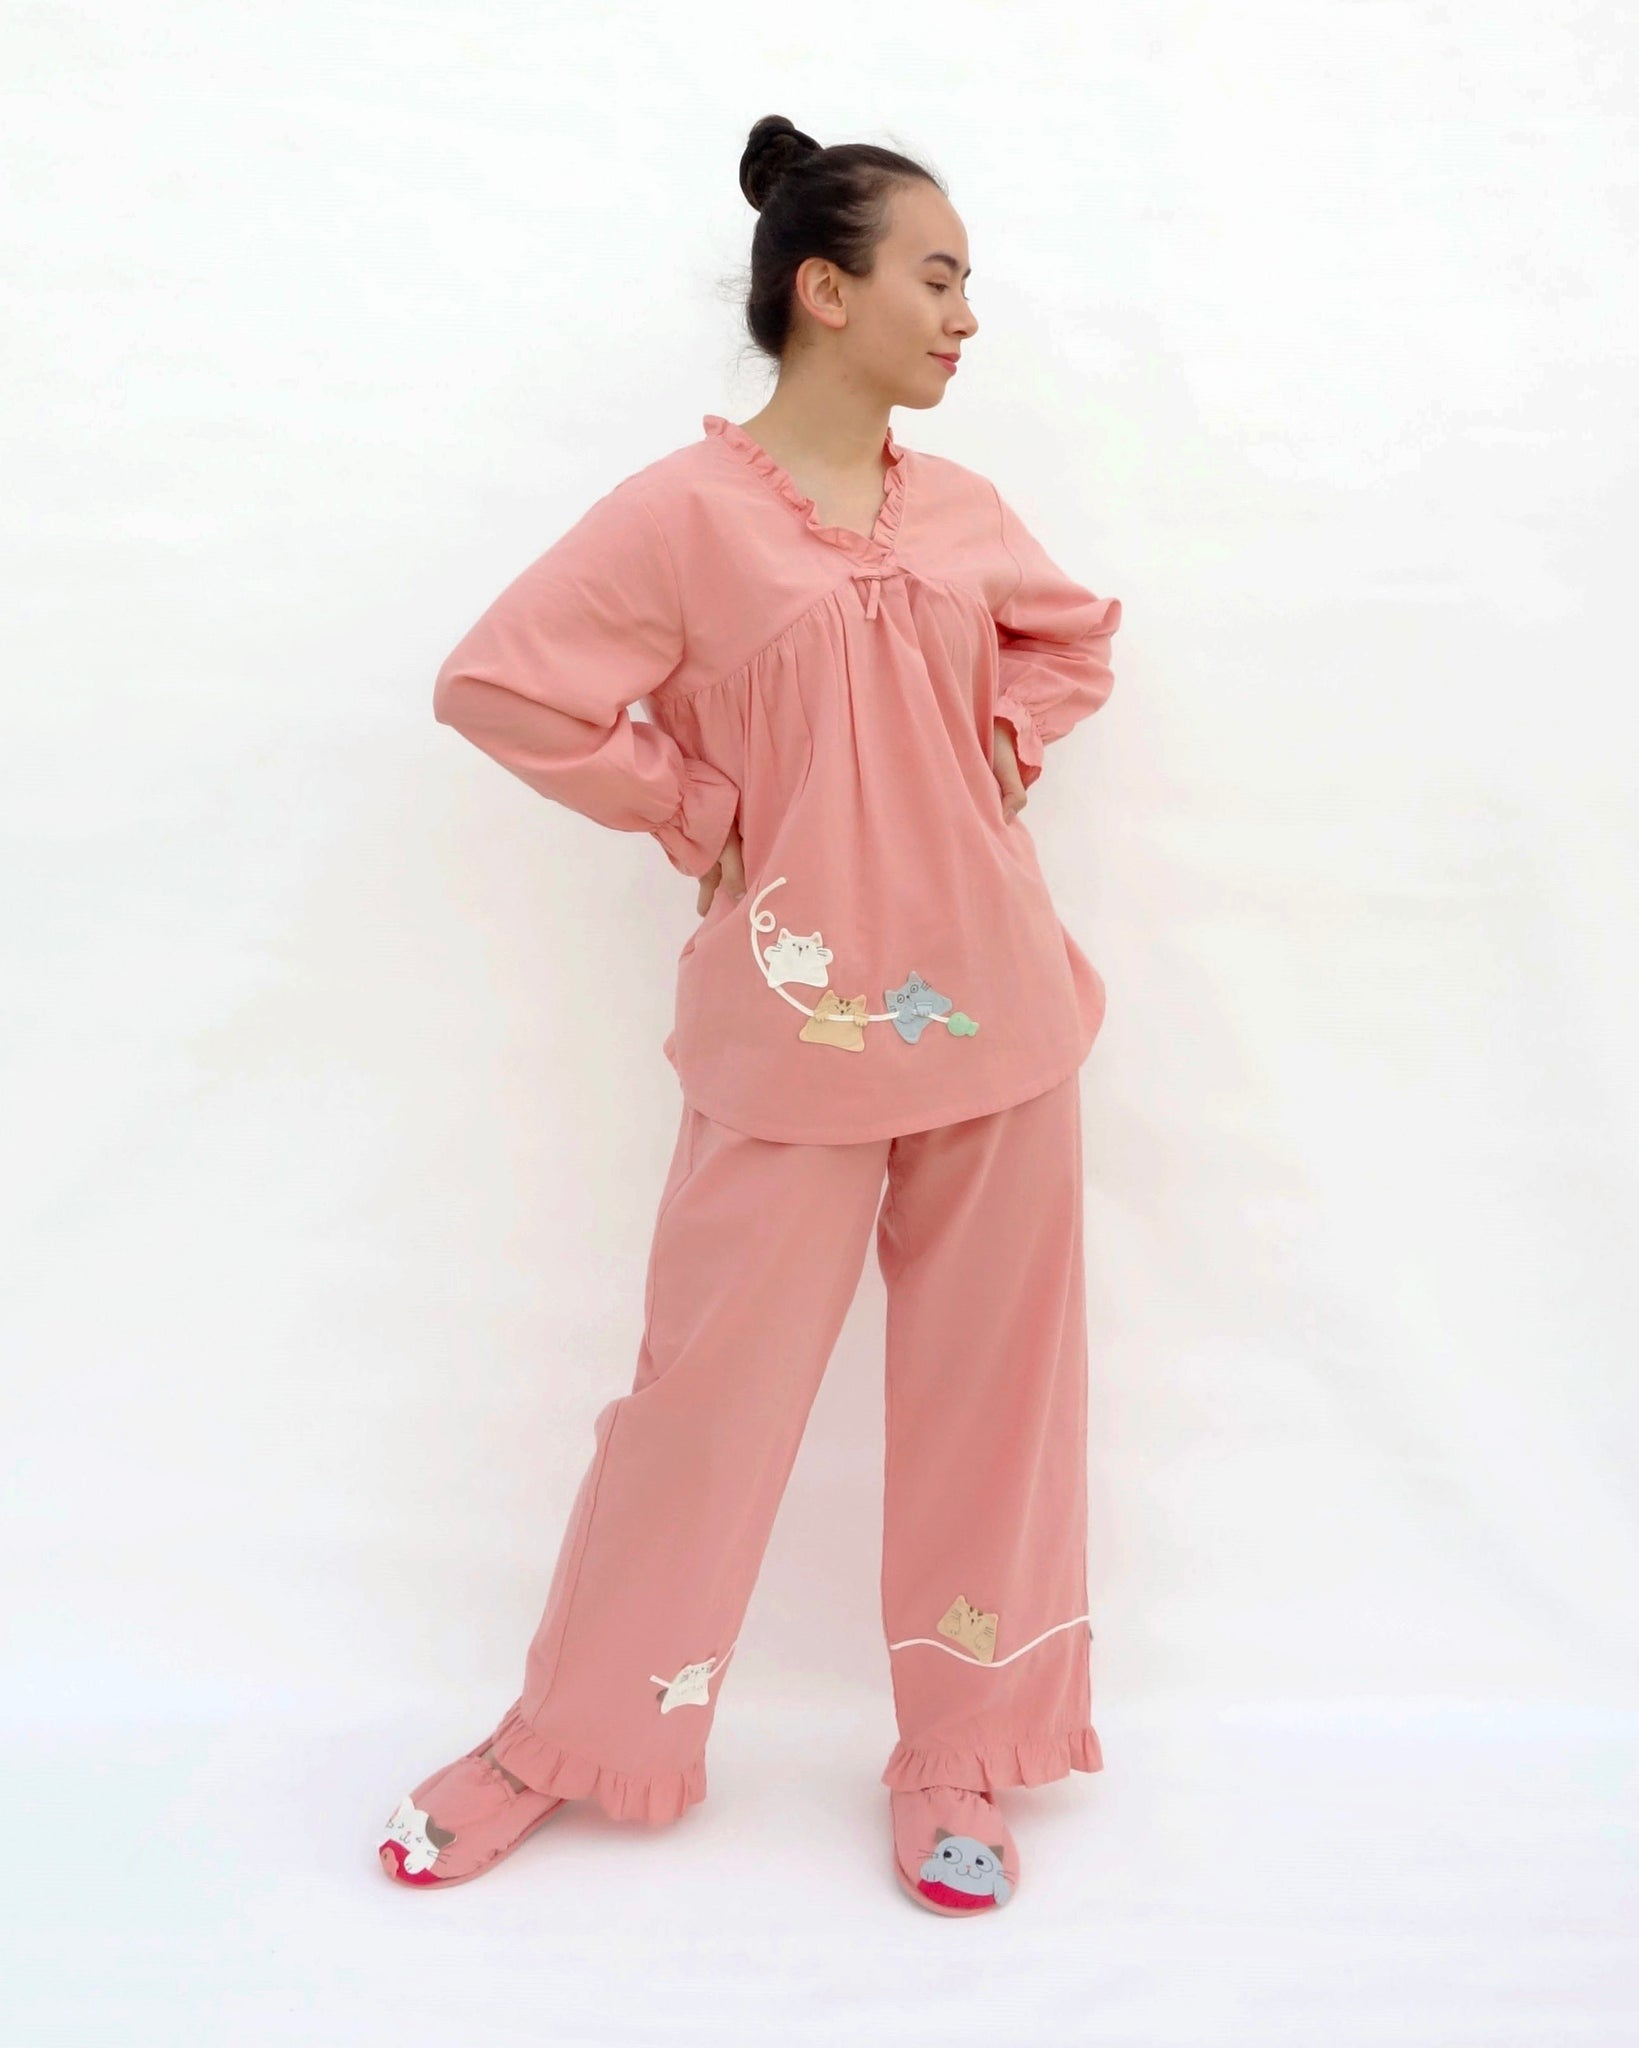 Women wearing pink pajamas with cat appliqué, embroidery details, and matching slippers in 3/4 view.